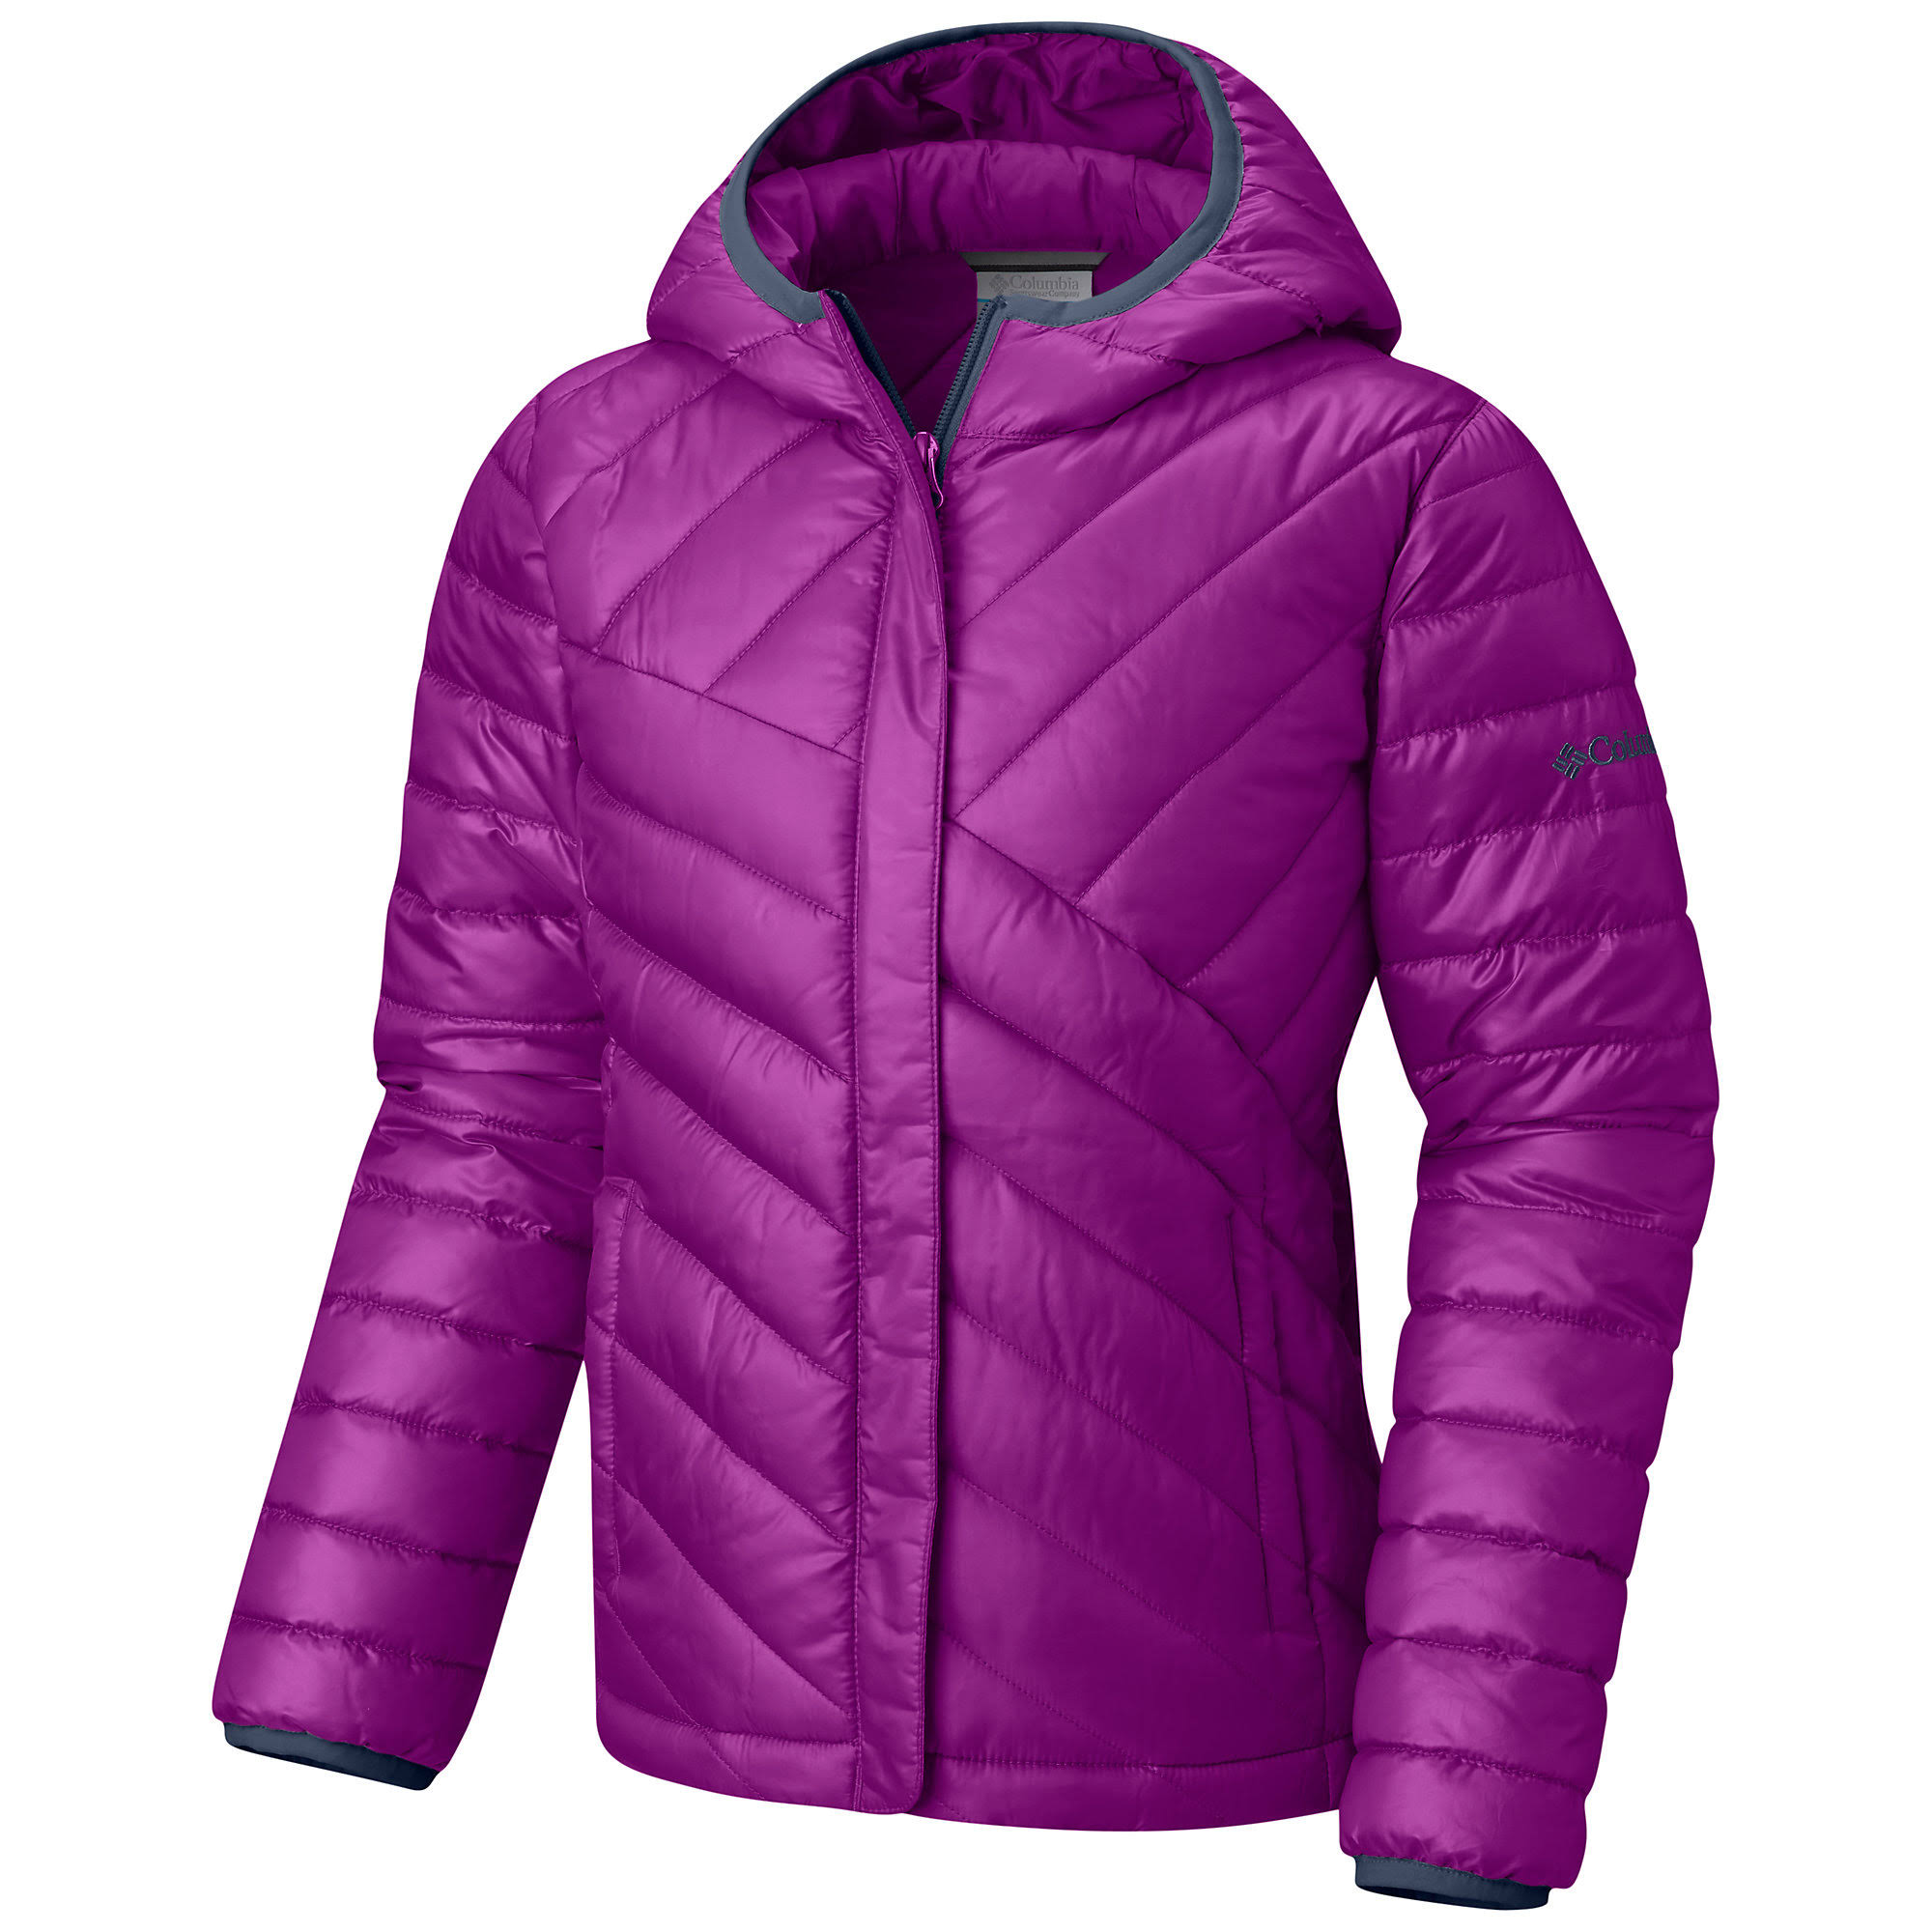 Powder Columbia 2t Kleinkind Lila Lite Puffer Pflaume Girls axwqP5v